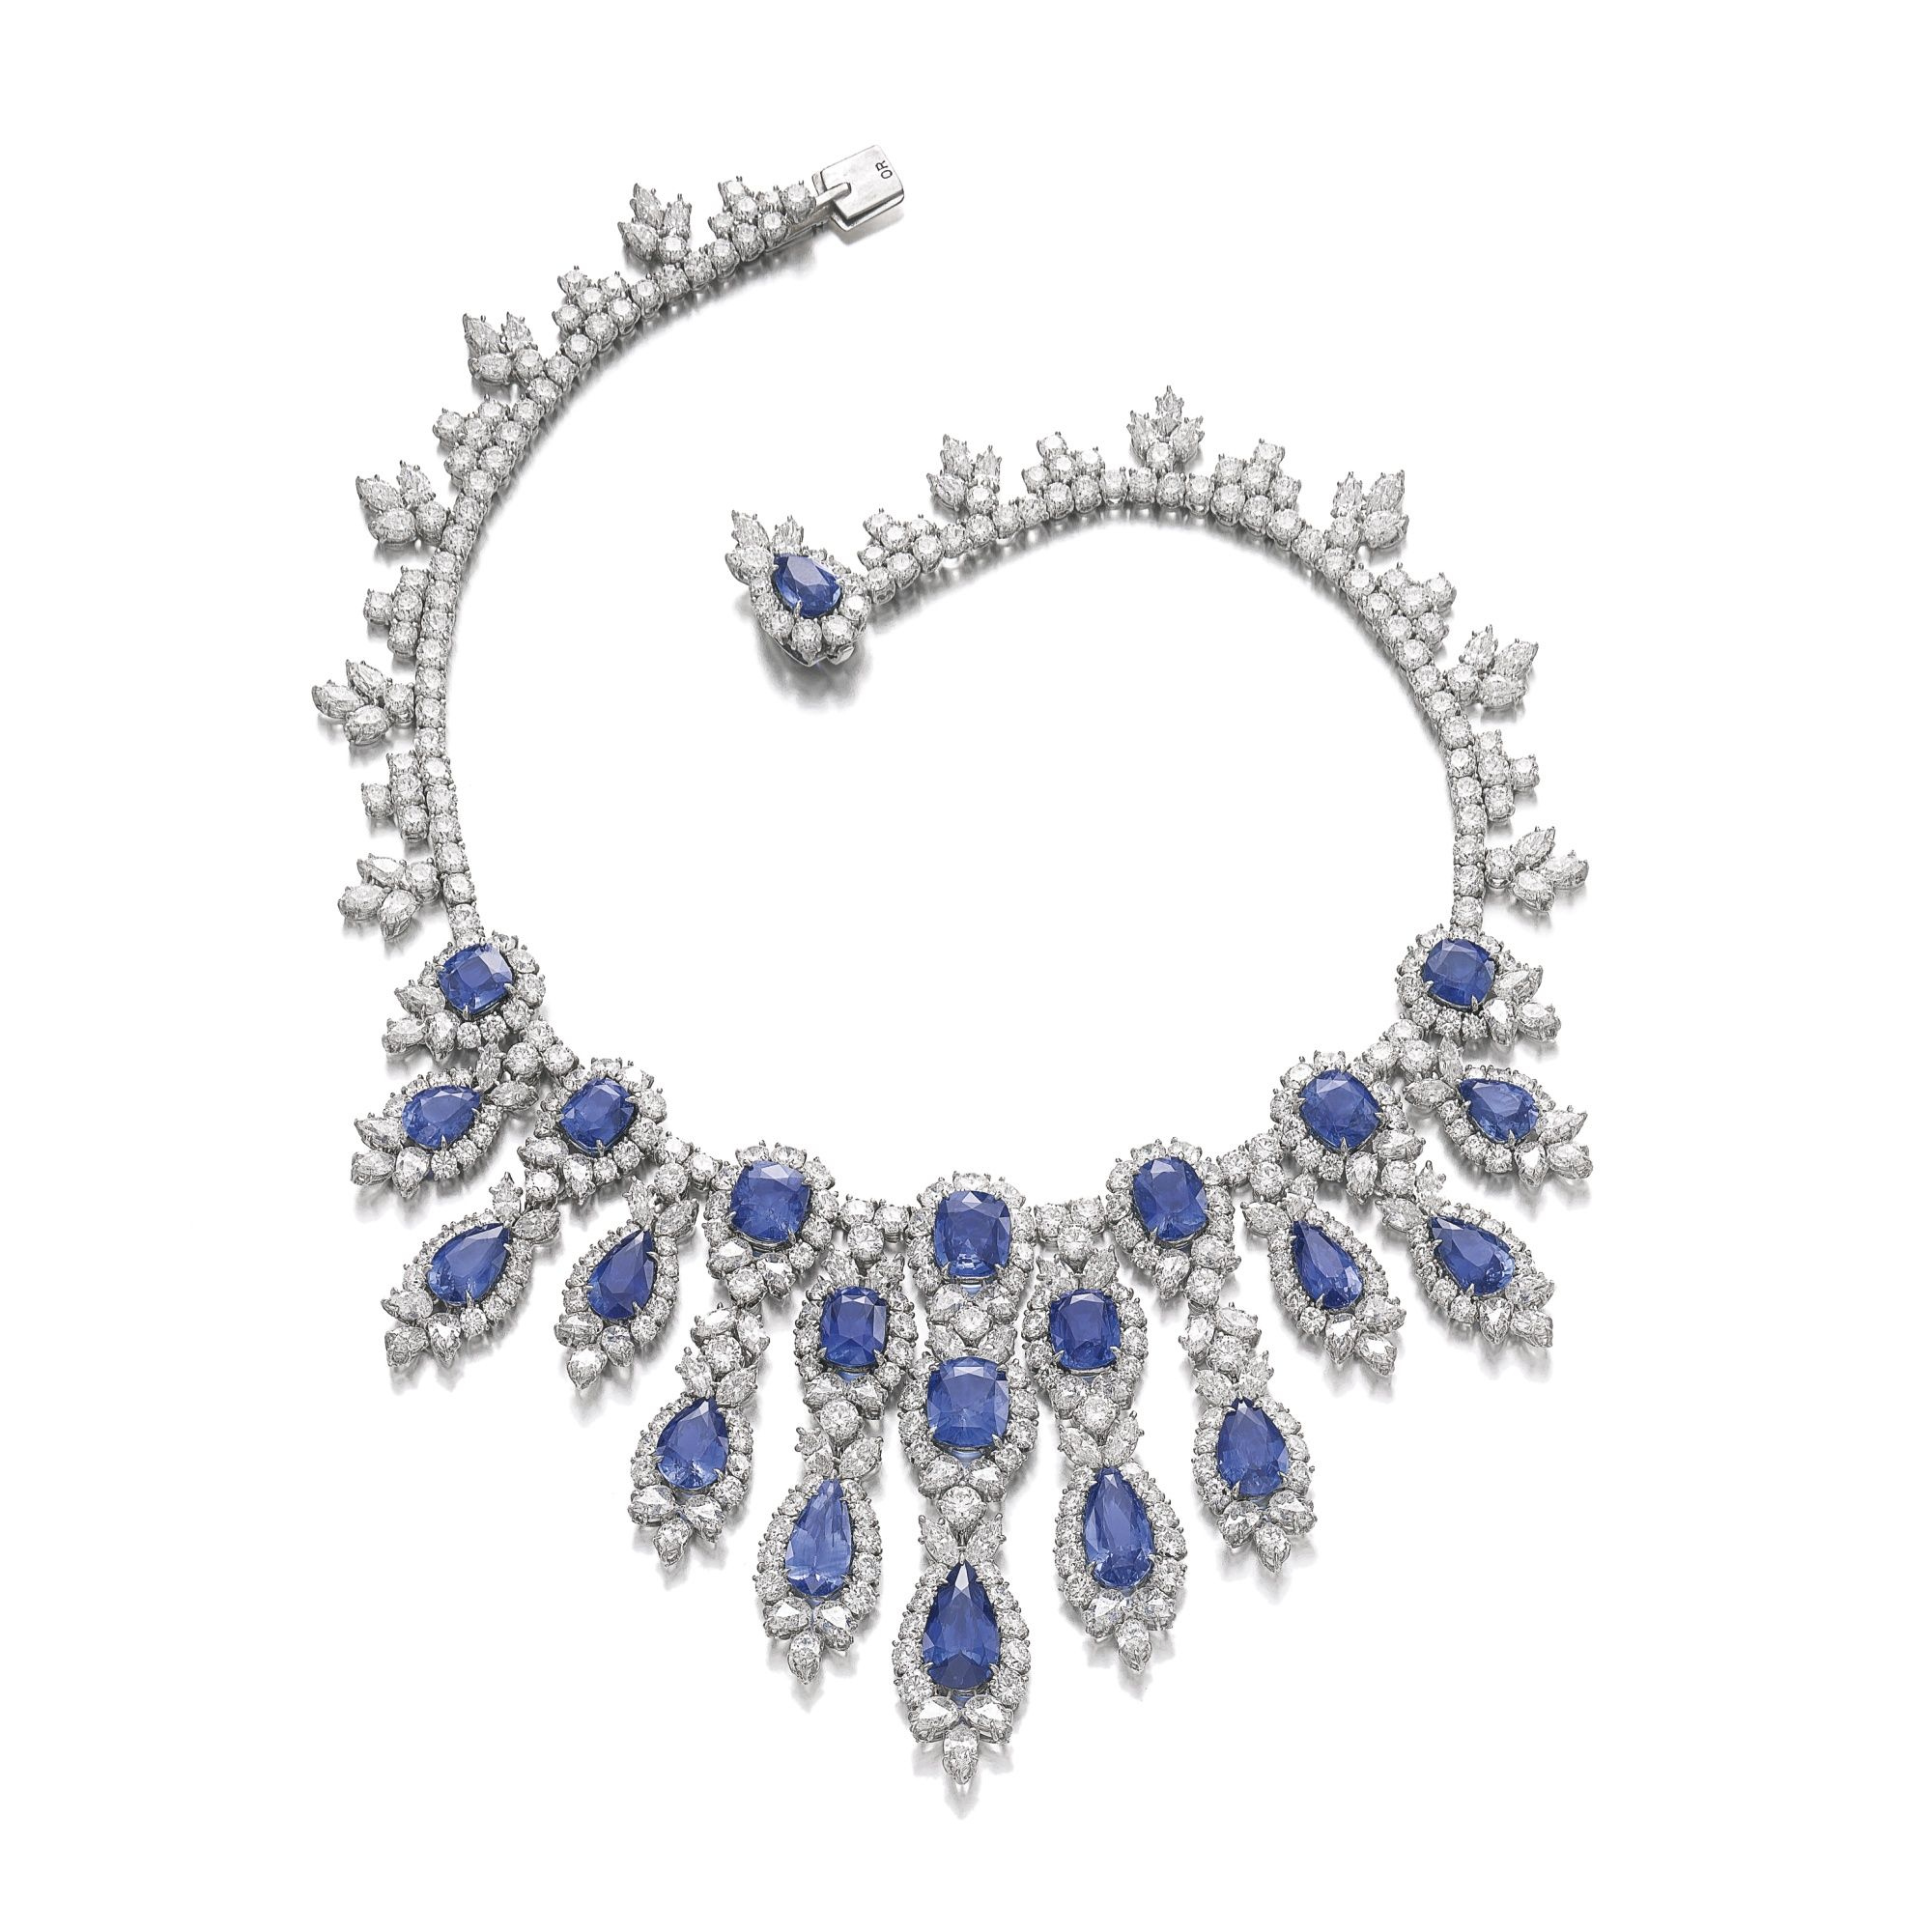 Sapphire and diamond necklace harry winston jewelry for Harry winston jewelry pinterest